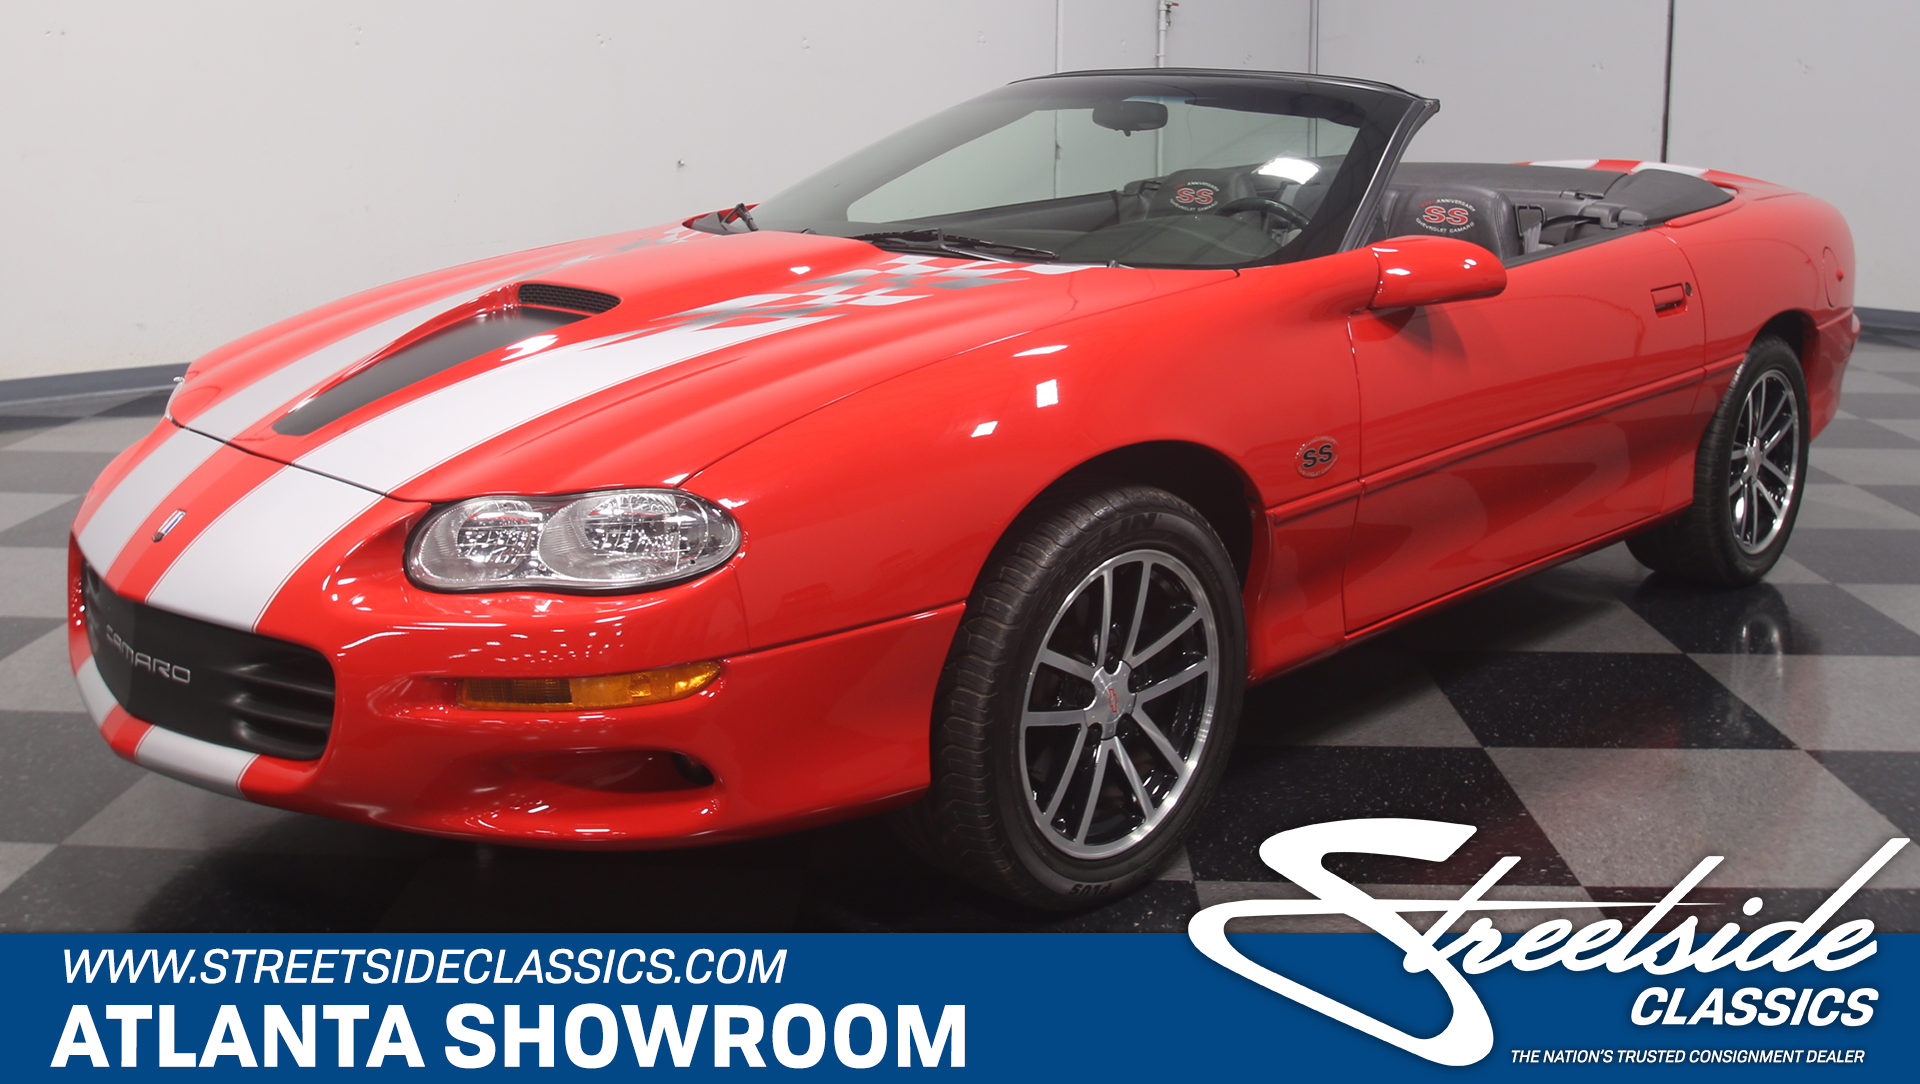 For Sale: 2002 Chevrolet Camaro. Spincar view. Play Video